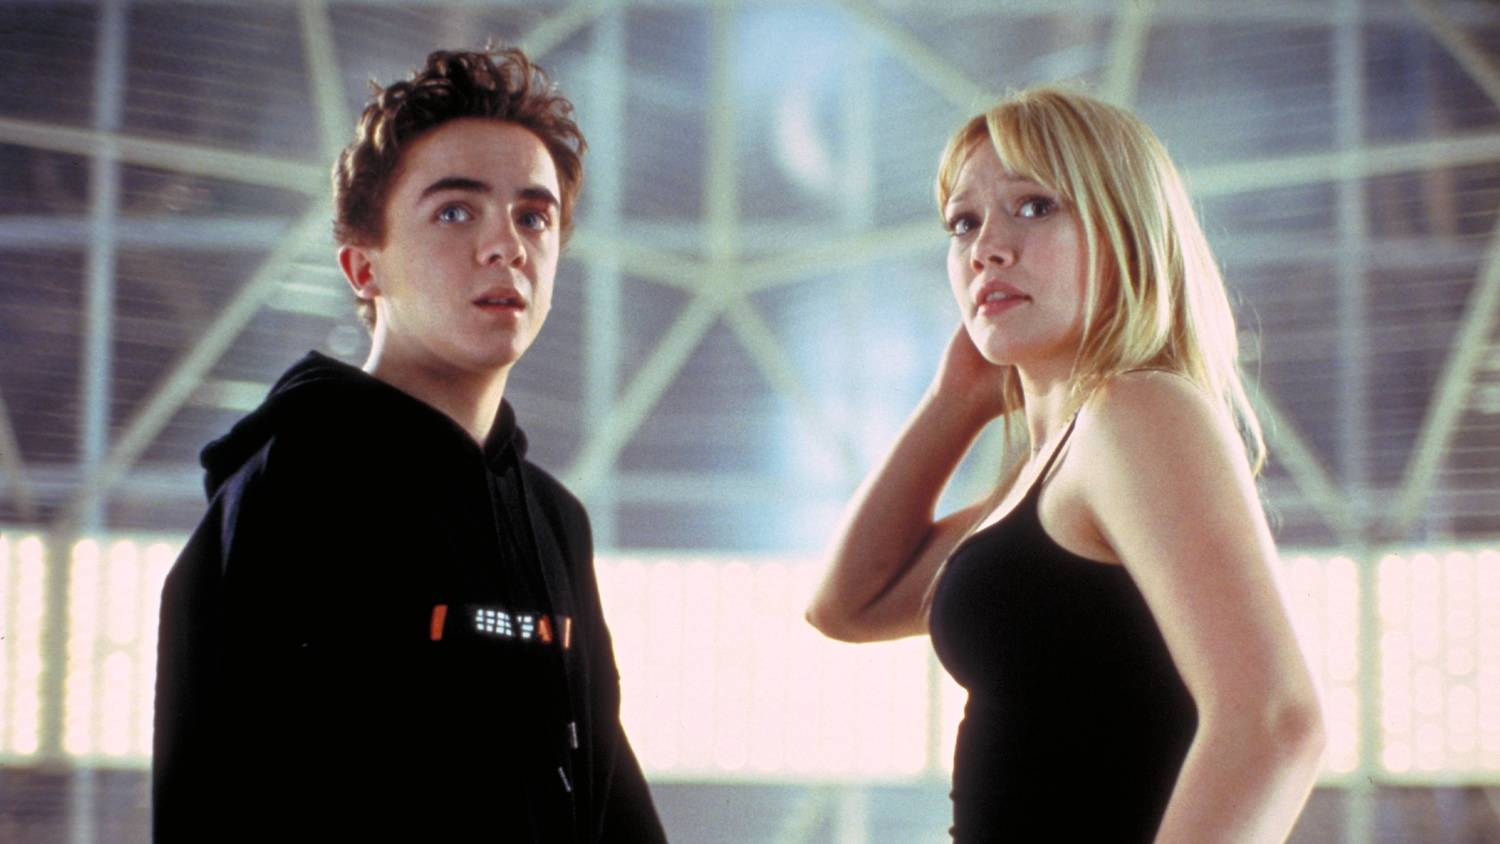 Cody Banks (Frankie Muniz) and Natalie Connors (Hilary Duff) in Agent Cody Banks (2003)